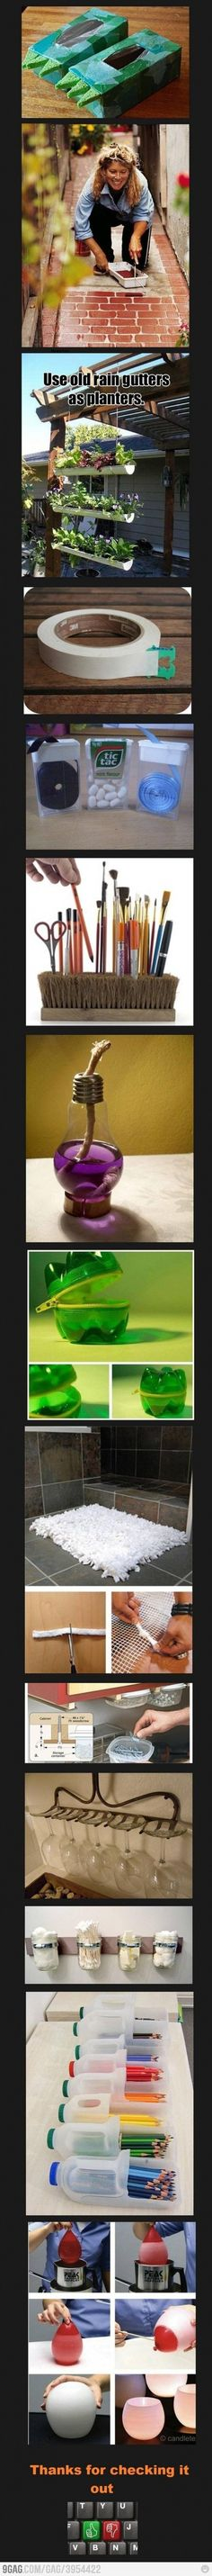 Clever recycling ideas!!!